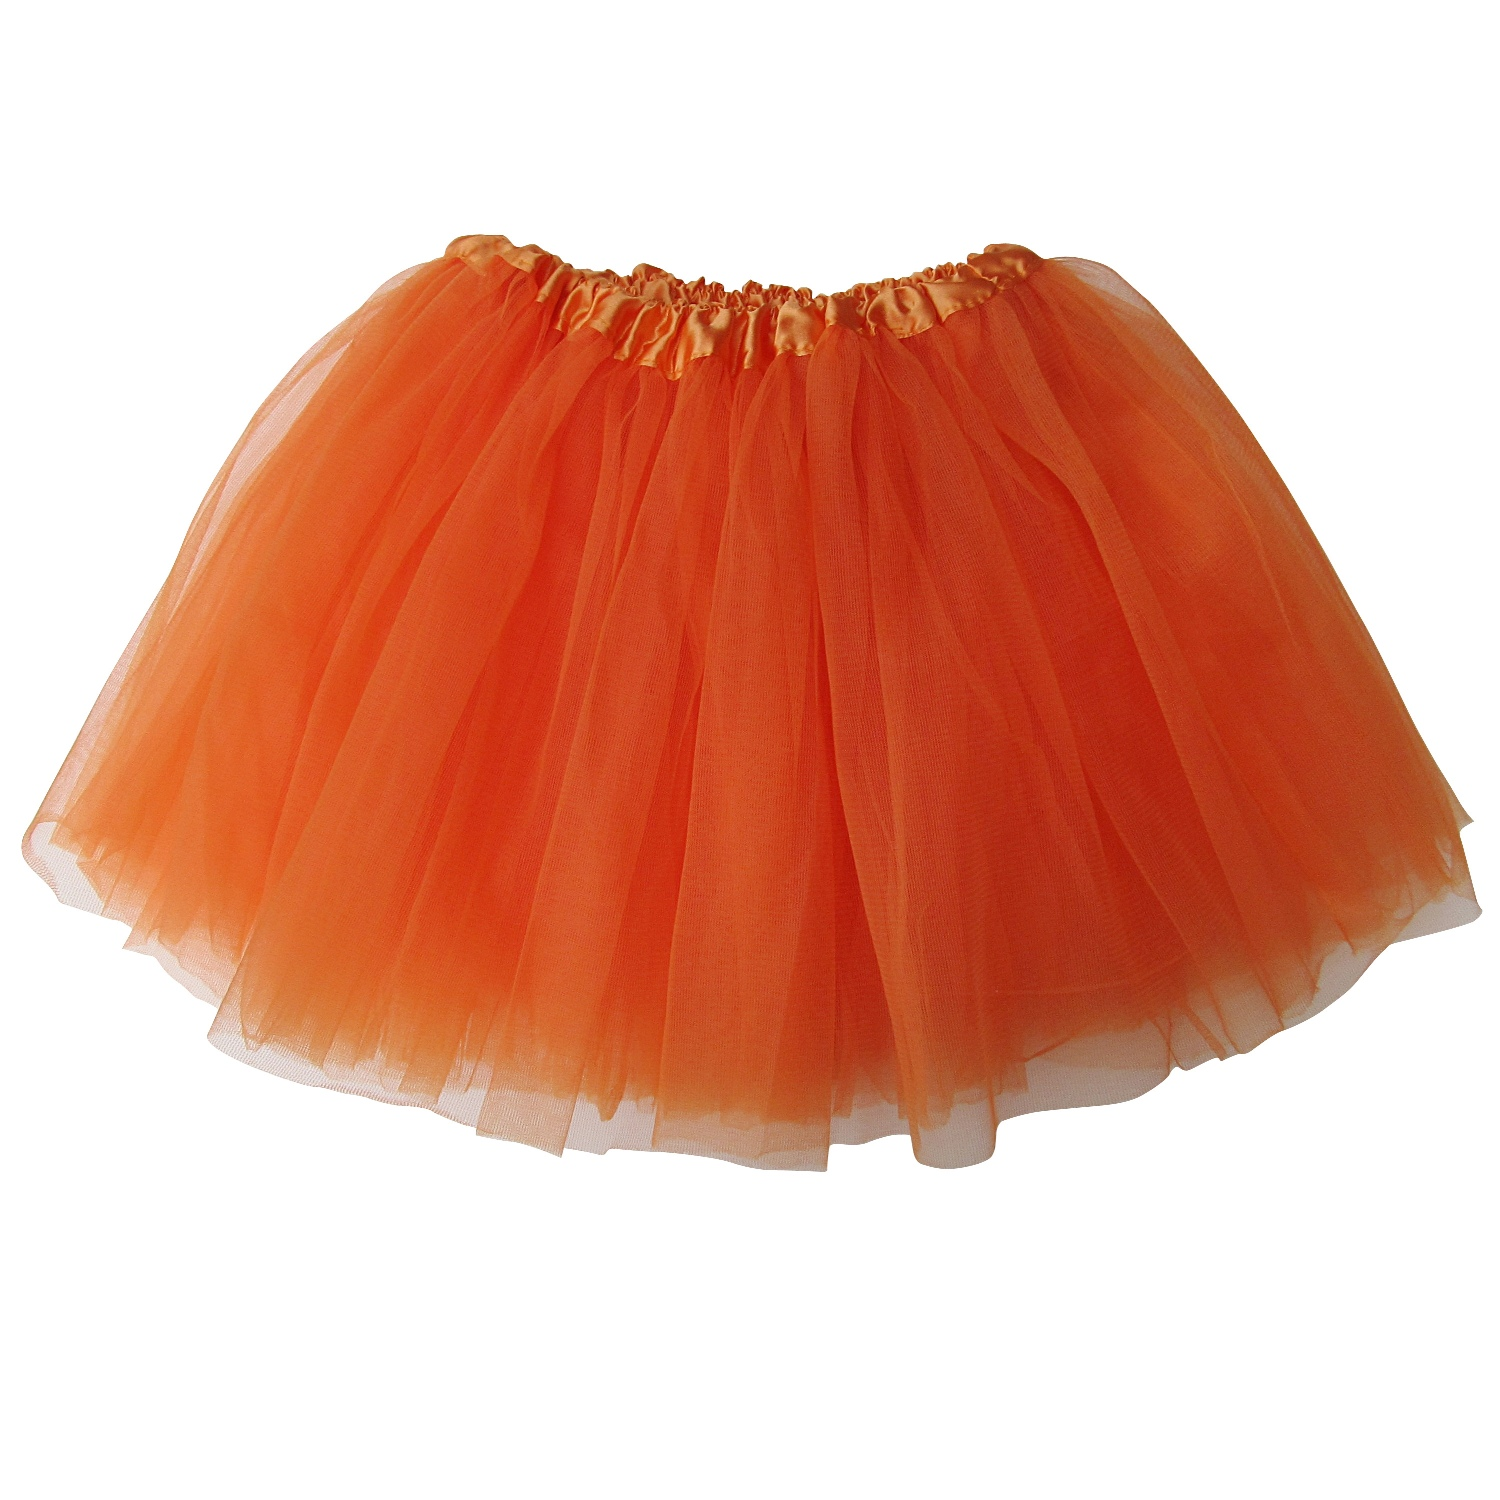 Tutu Skirt for Kids - Ballet Basic Tutu for Toddler or Little Girl, 3-Layer Tulle Chiffon, Ballet Recital Dress, Princess Party Outfit, Halloween Costume